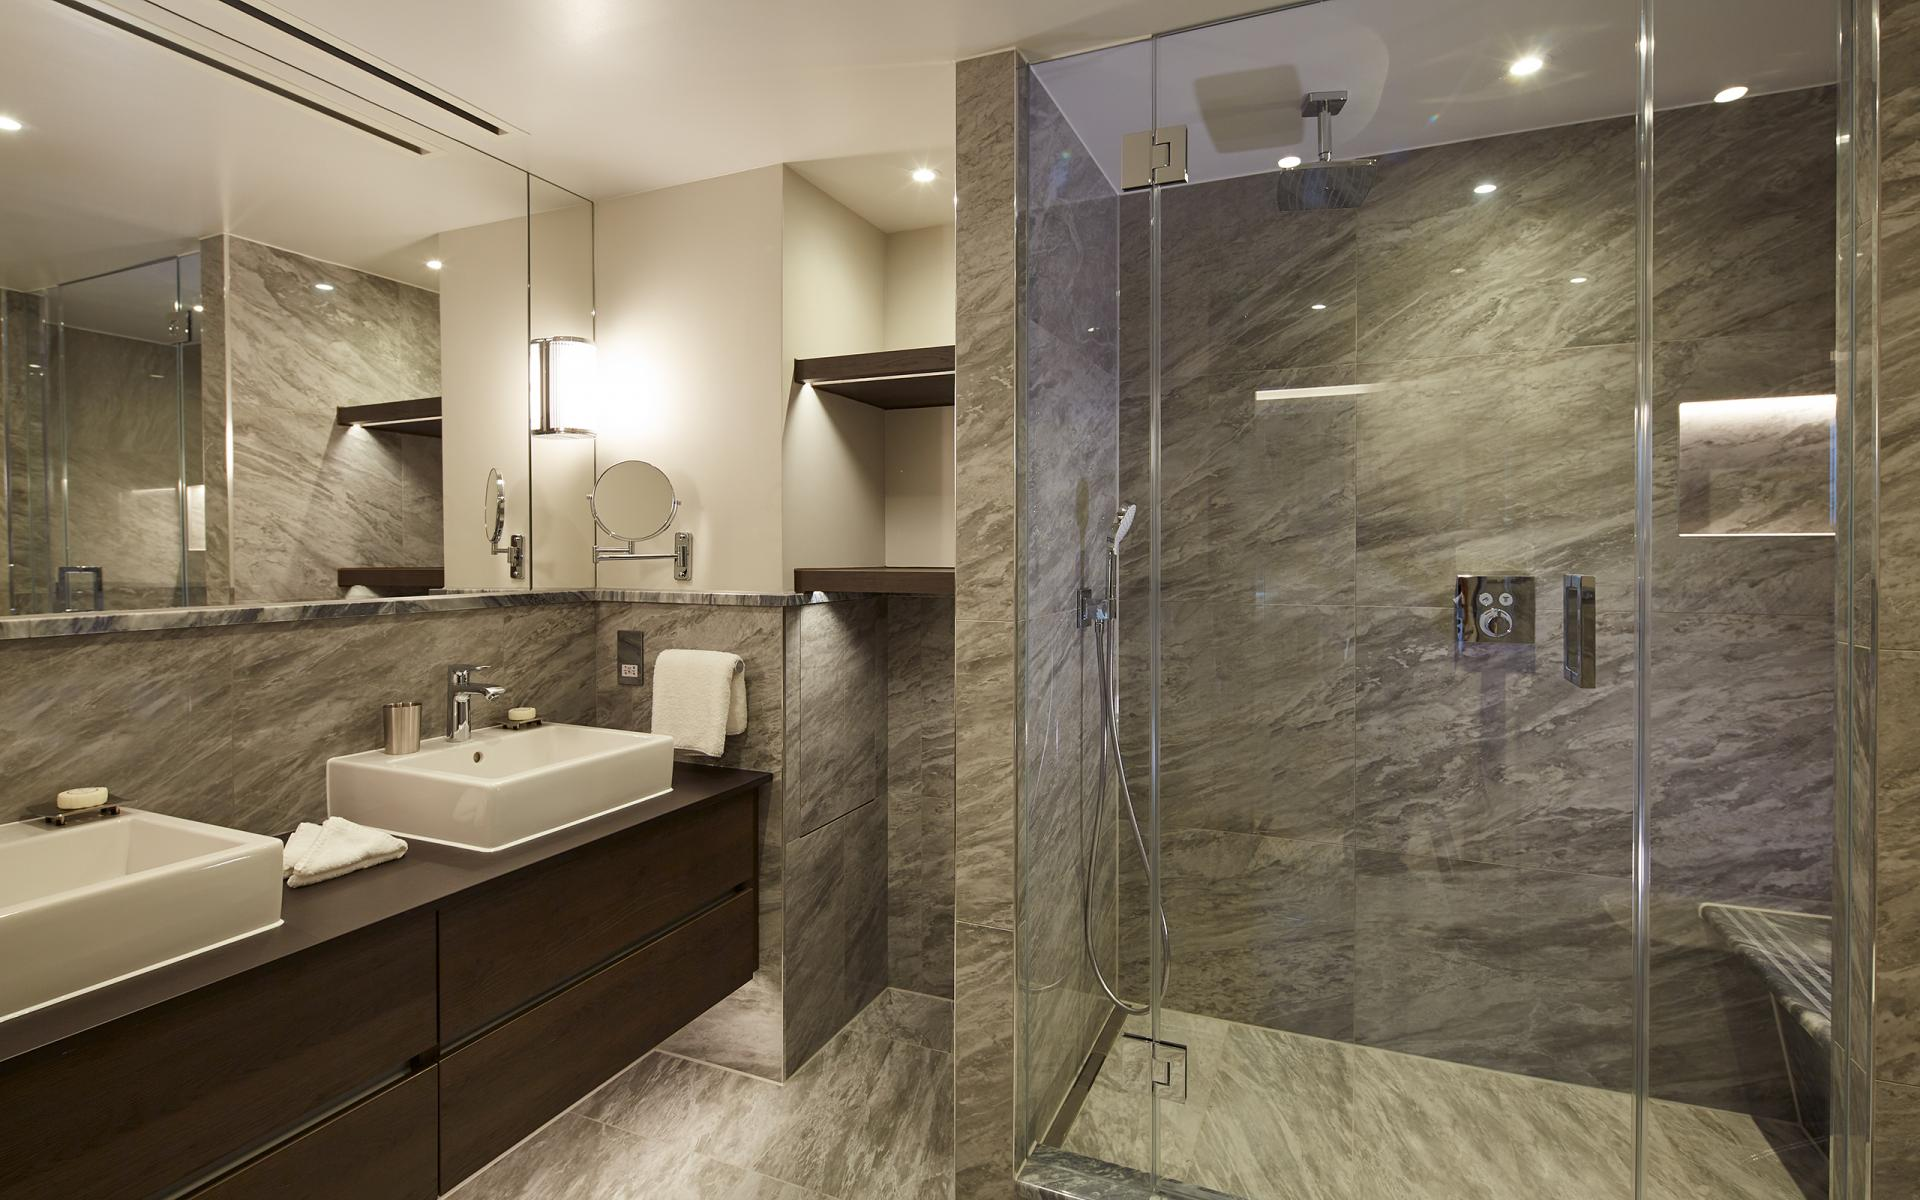 Bathroom at Cheval Gloucester Park, South Kensington, London - Citybase Apartments